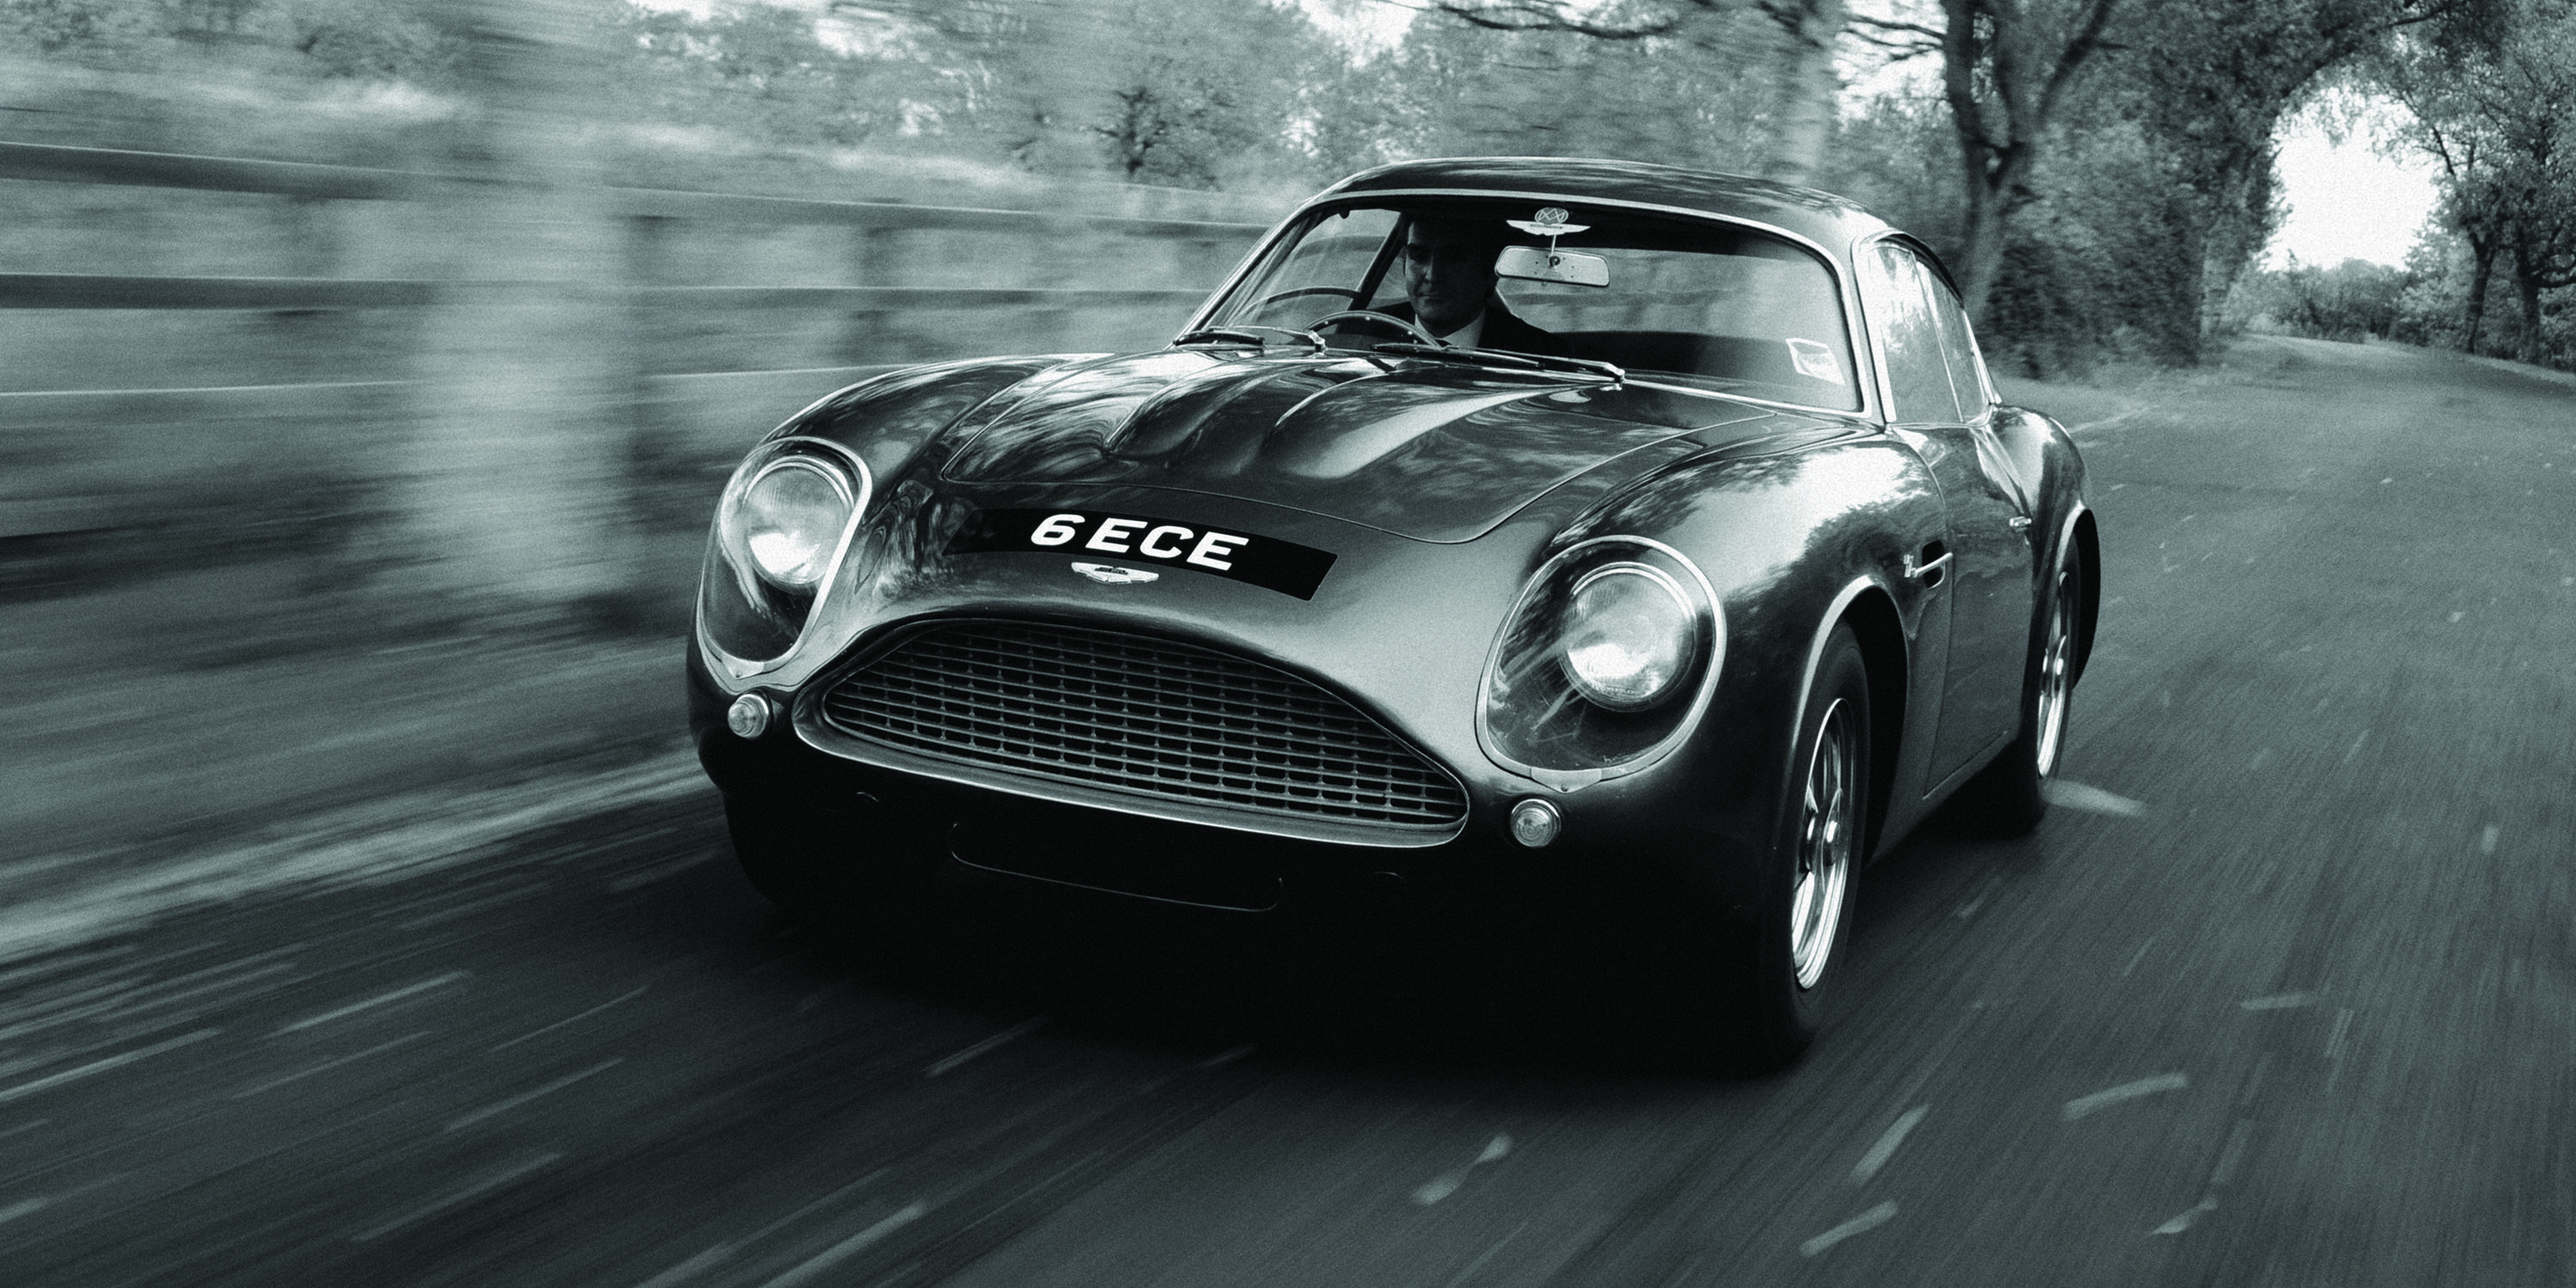 aston martin is putting the achingly gorgeous db4 gt zagato back in